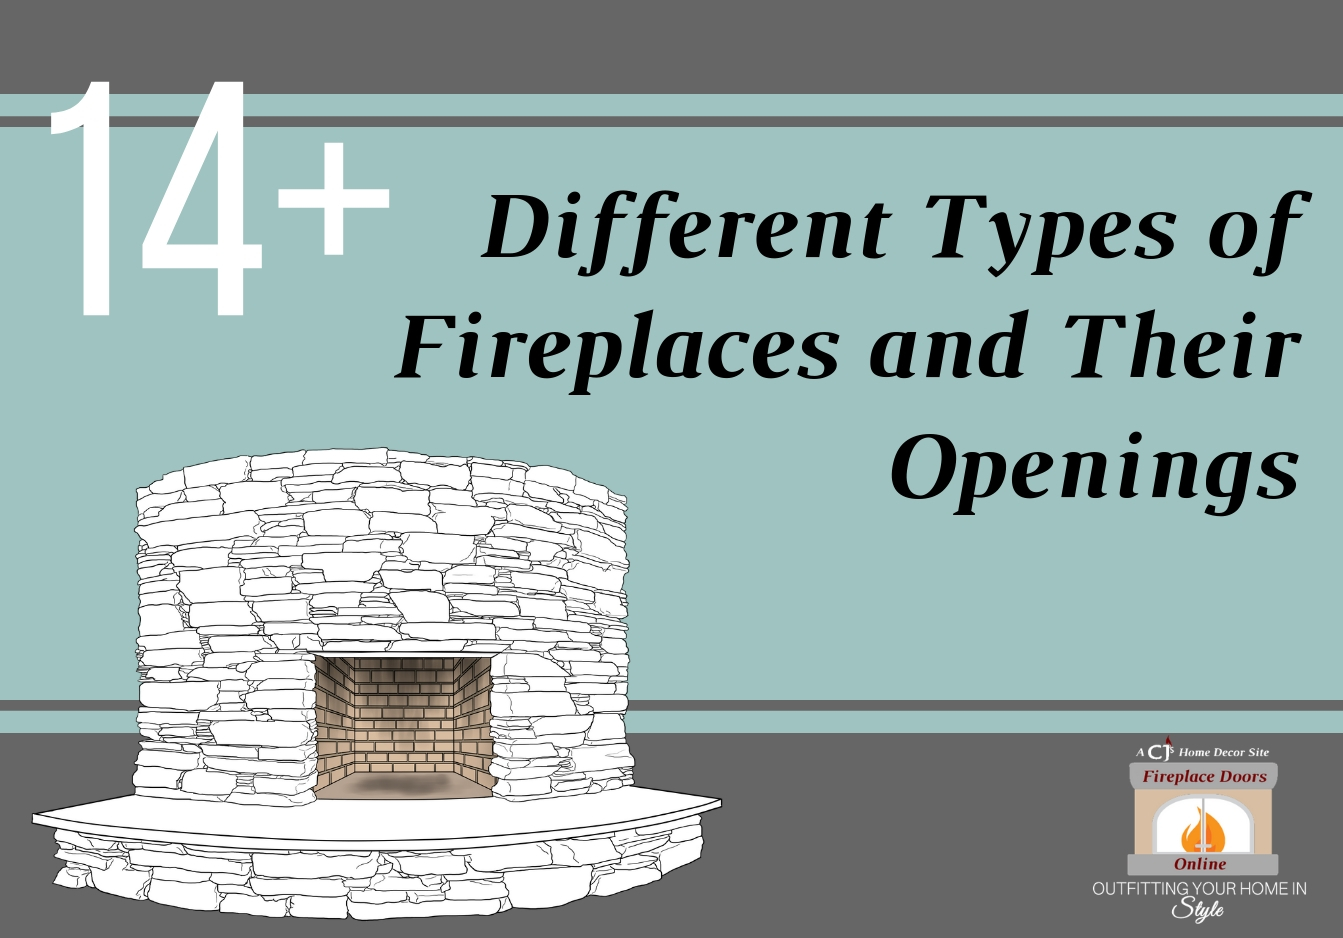 14+ Different Types of Fireplaces and Their Openings